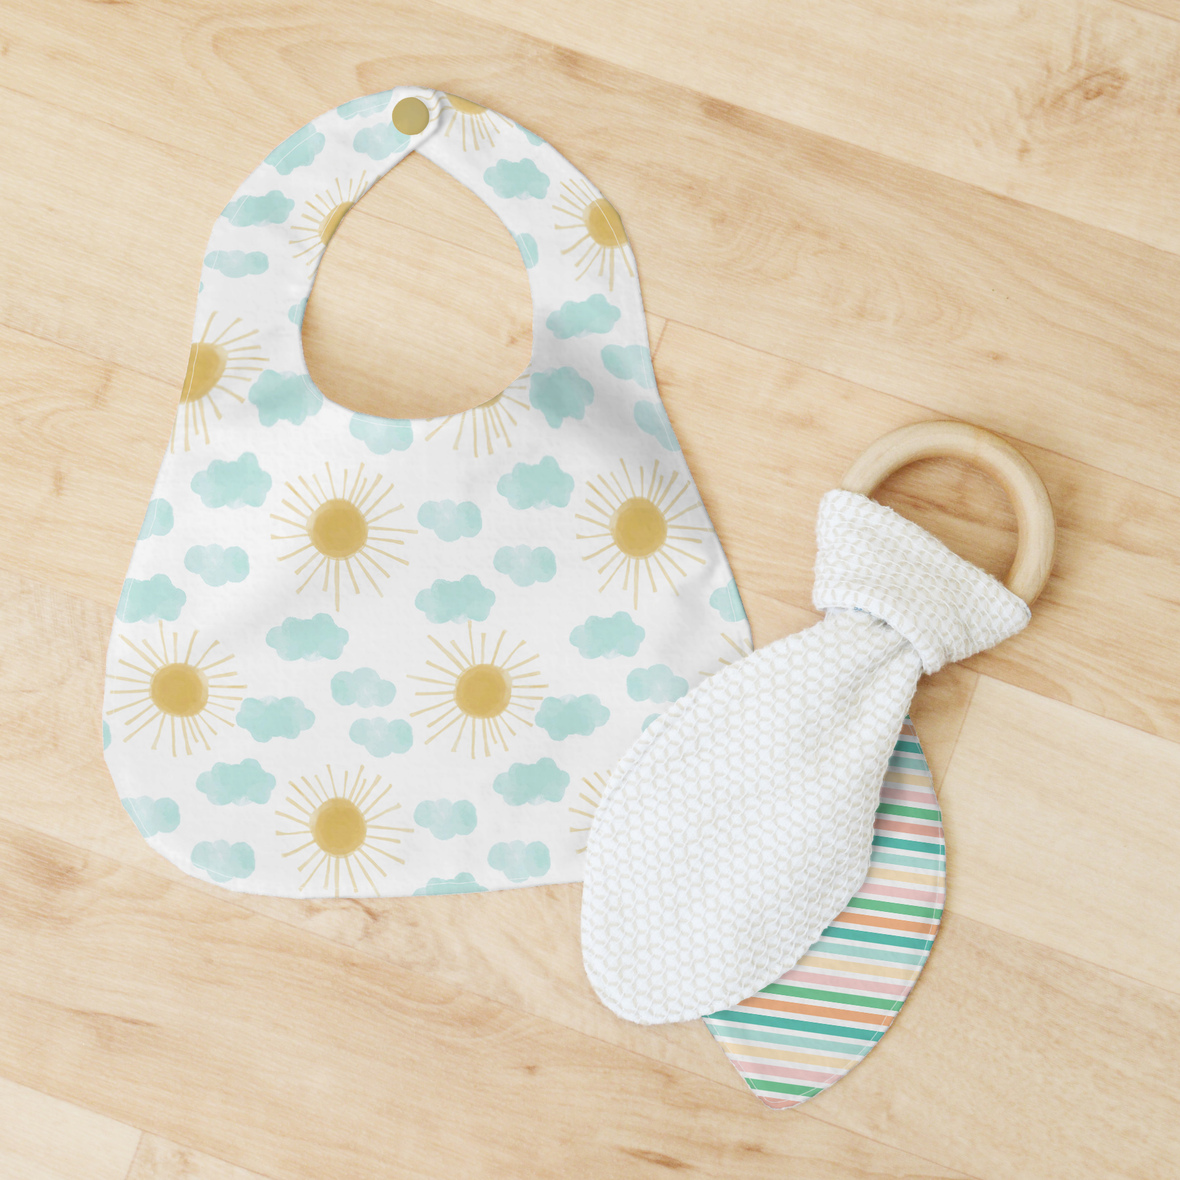 Bib and Teether small scale suns and stripe 1.1